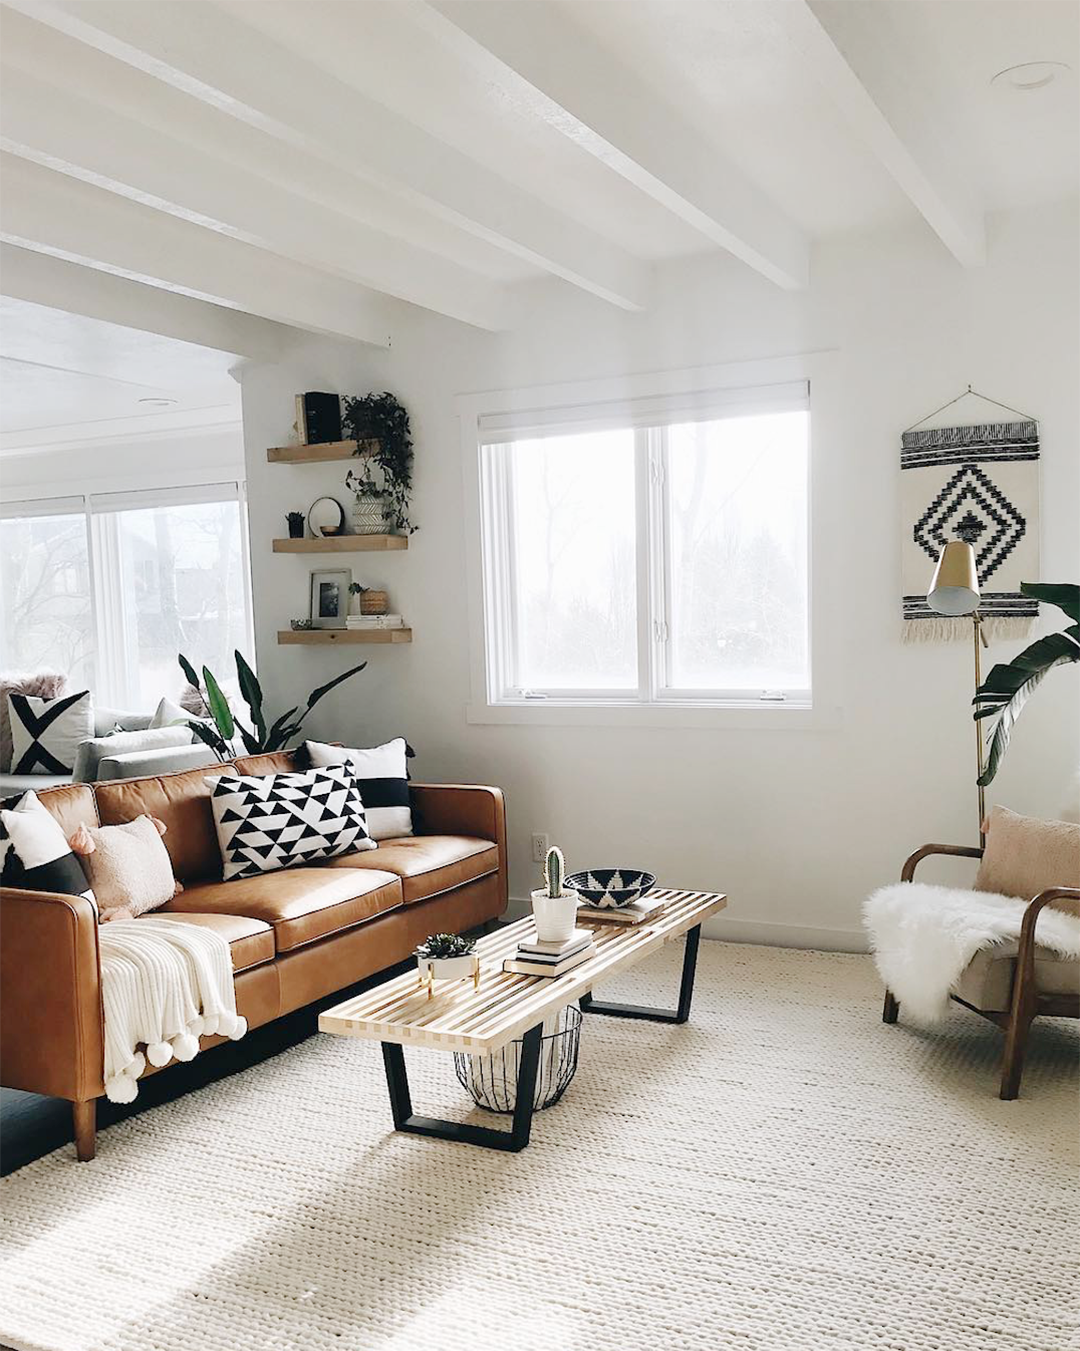 Redecorating Living Room: Sunday Redecorating Goals Via @saschaovard! That Hamilton